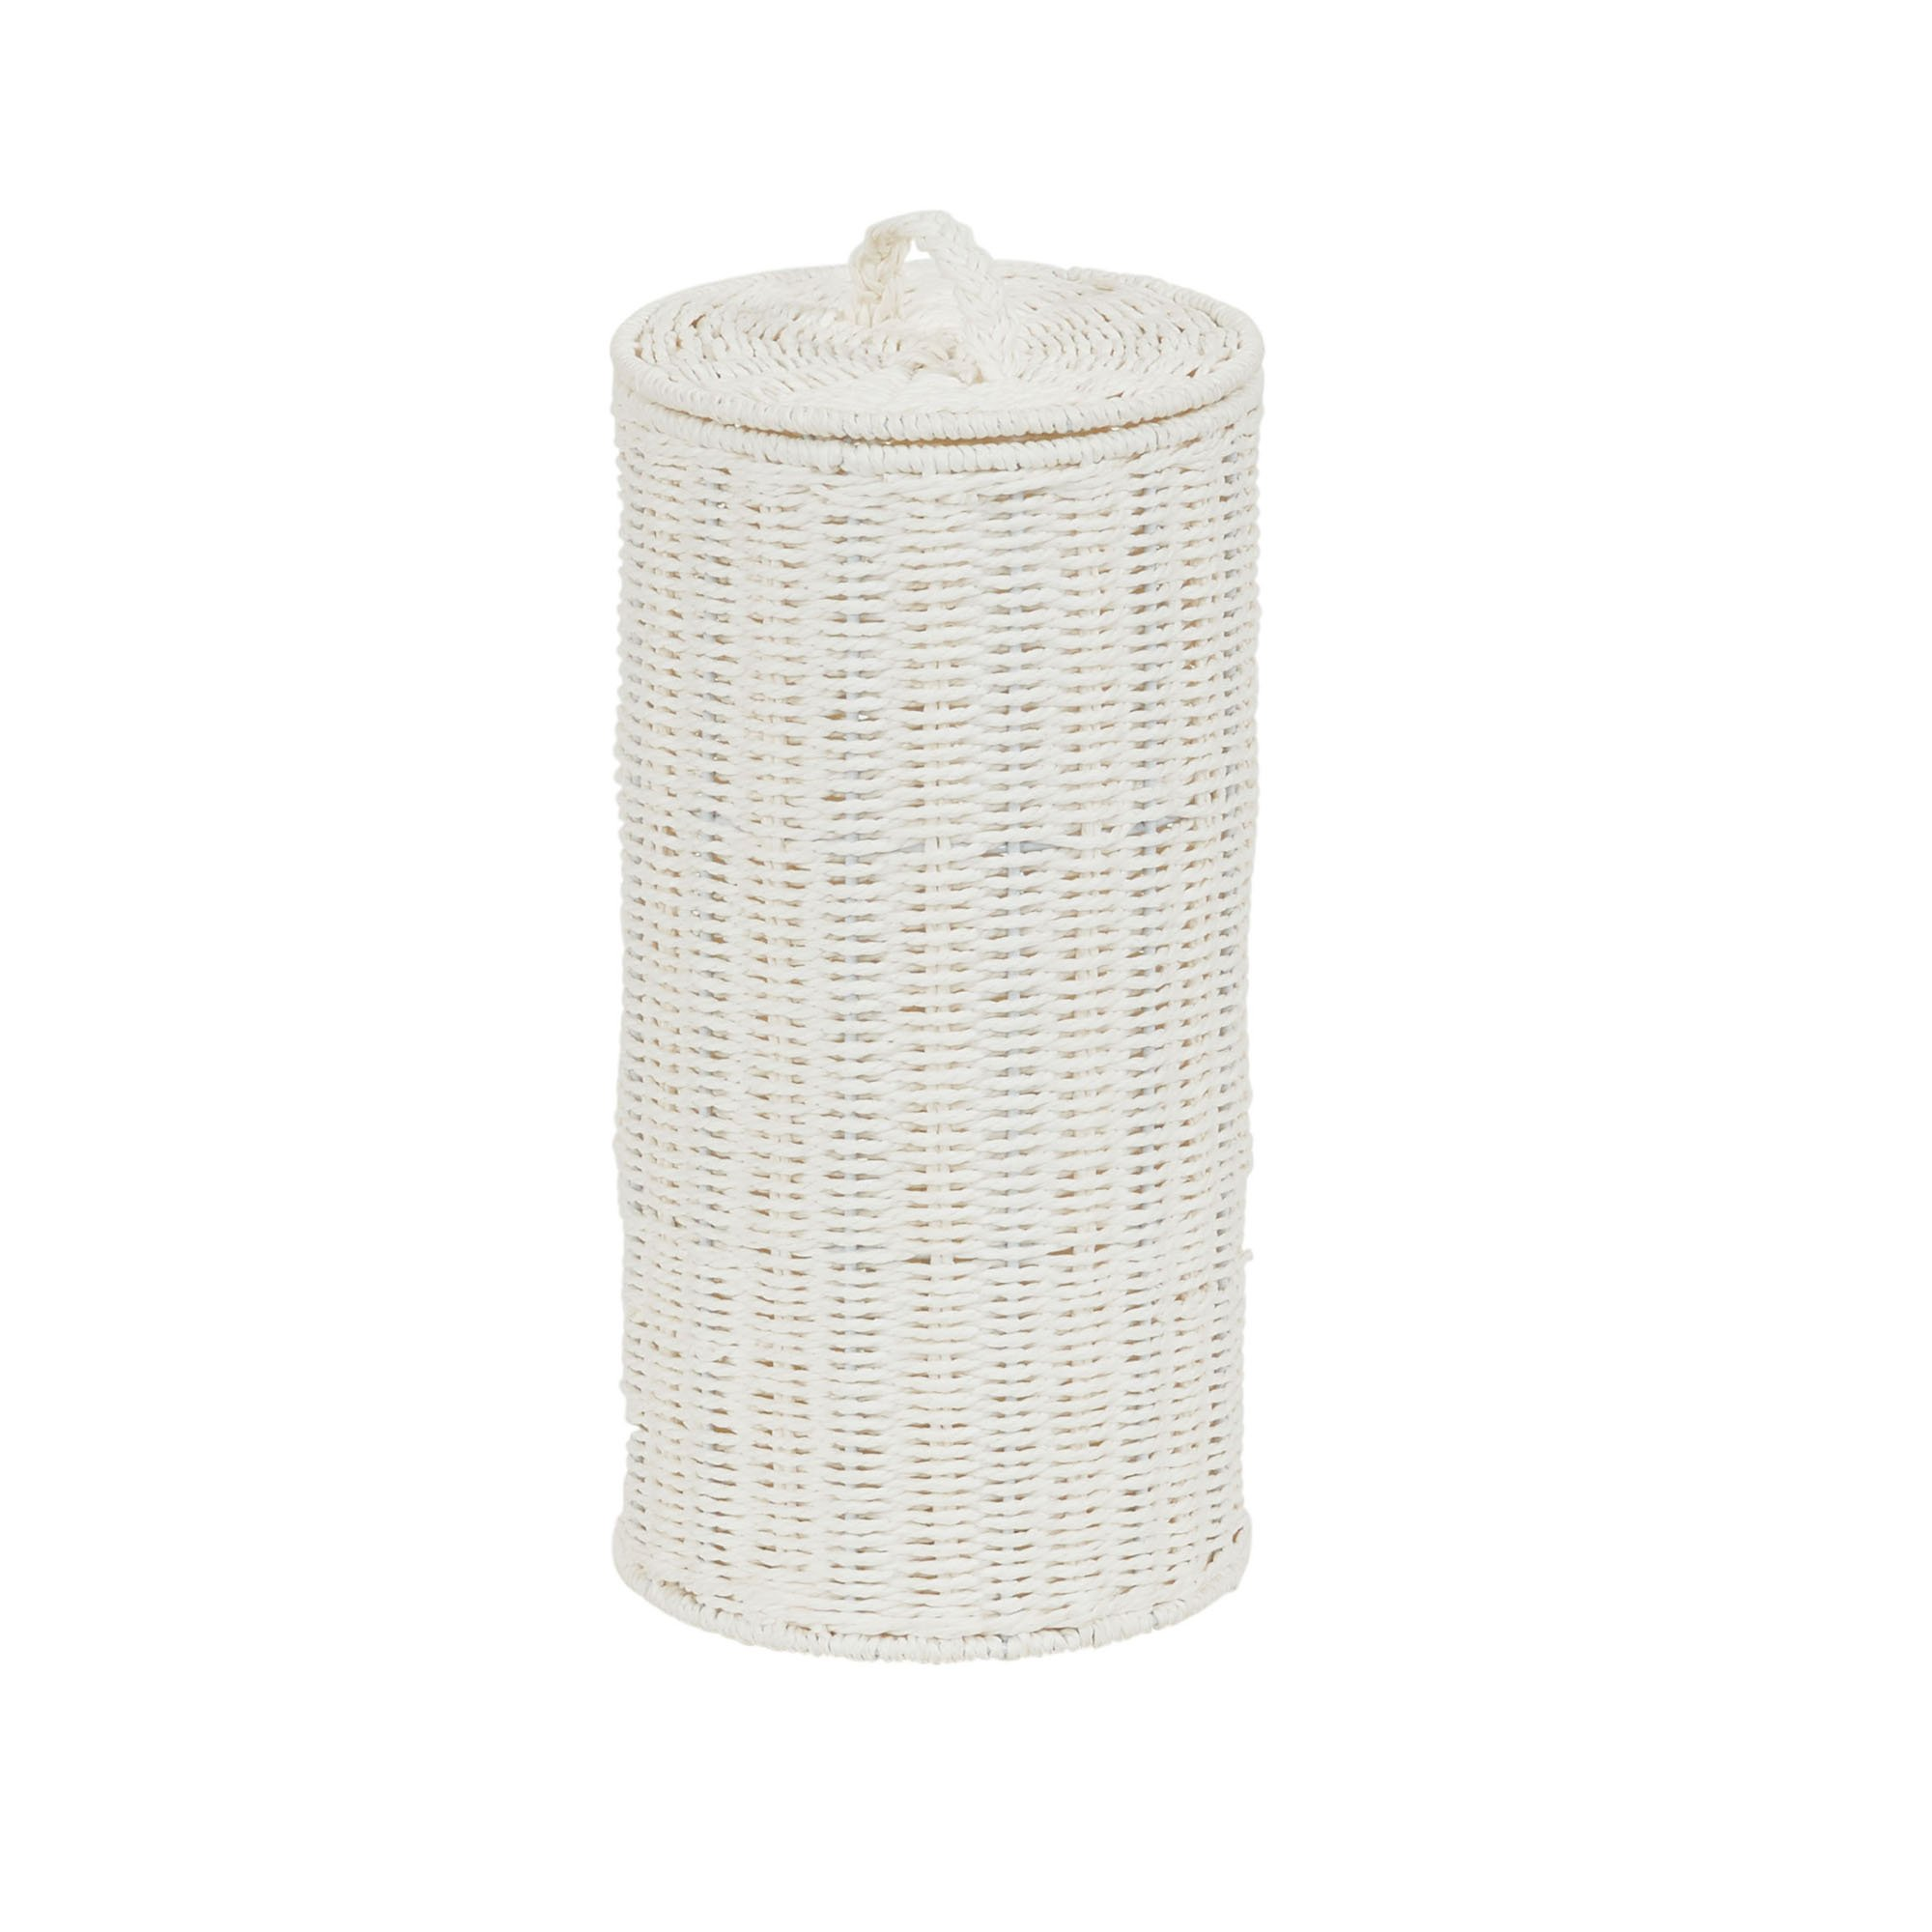 Household Essentials ml-7194 Paper Rope, White